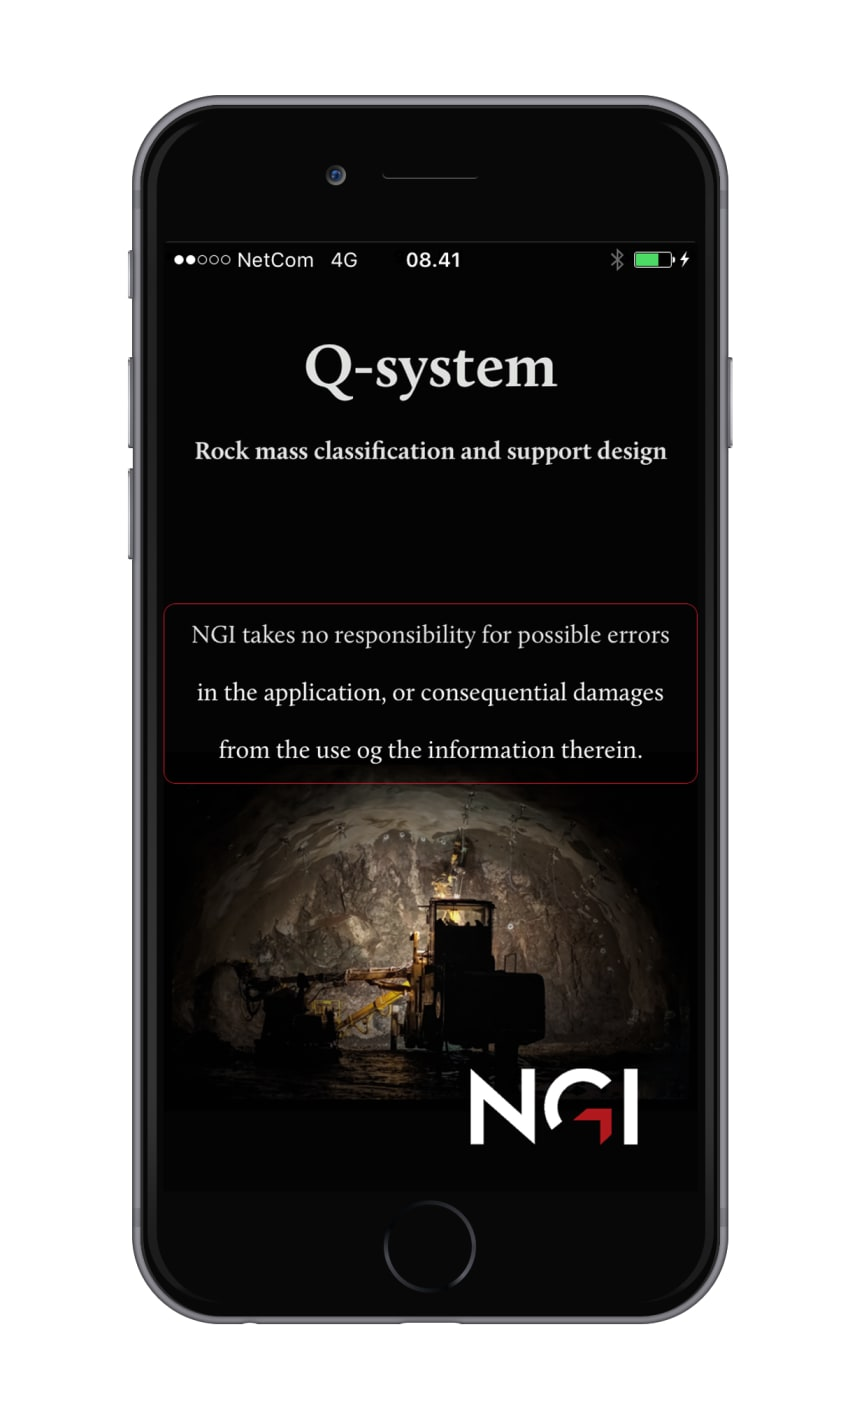 The Q-system App from NGI will be available in January 2016.